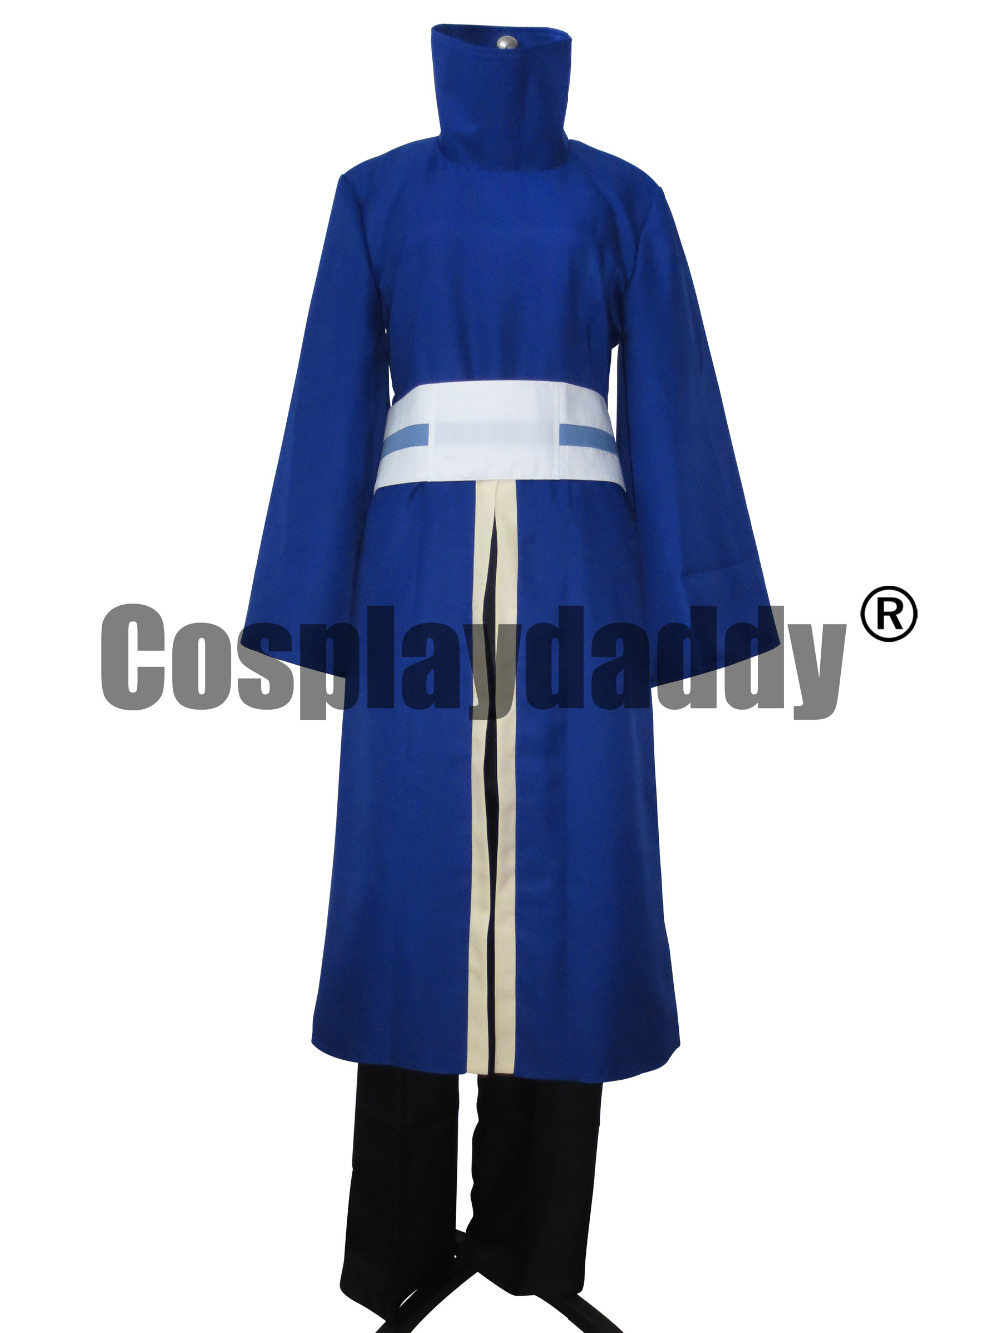 Cosplay Anime Akatsuki Ninja Tobi Obito Madara Uchiha Obito Cloak Cos